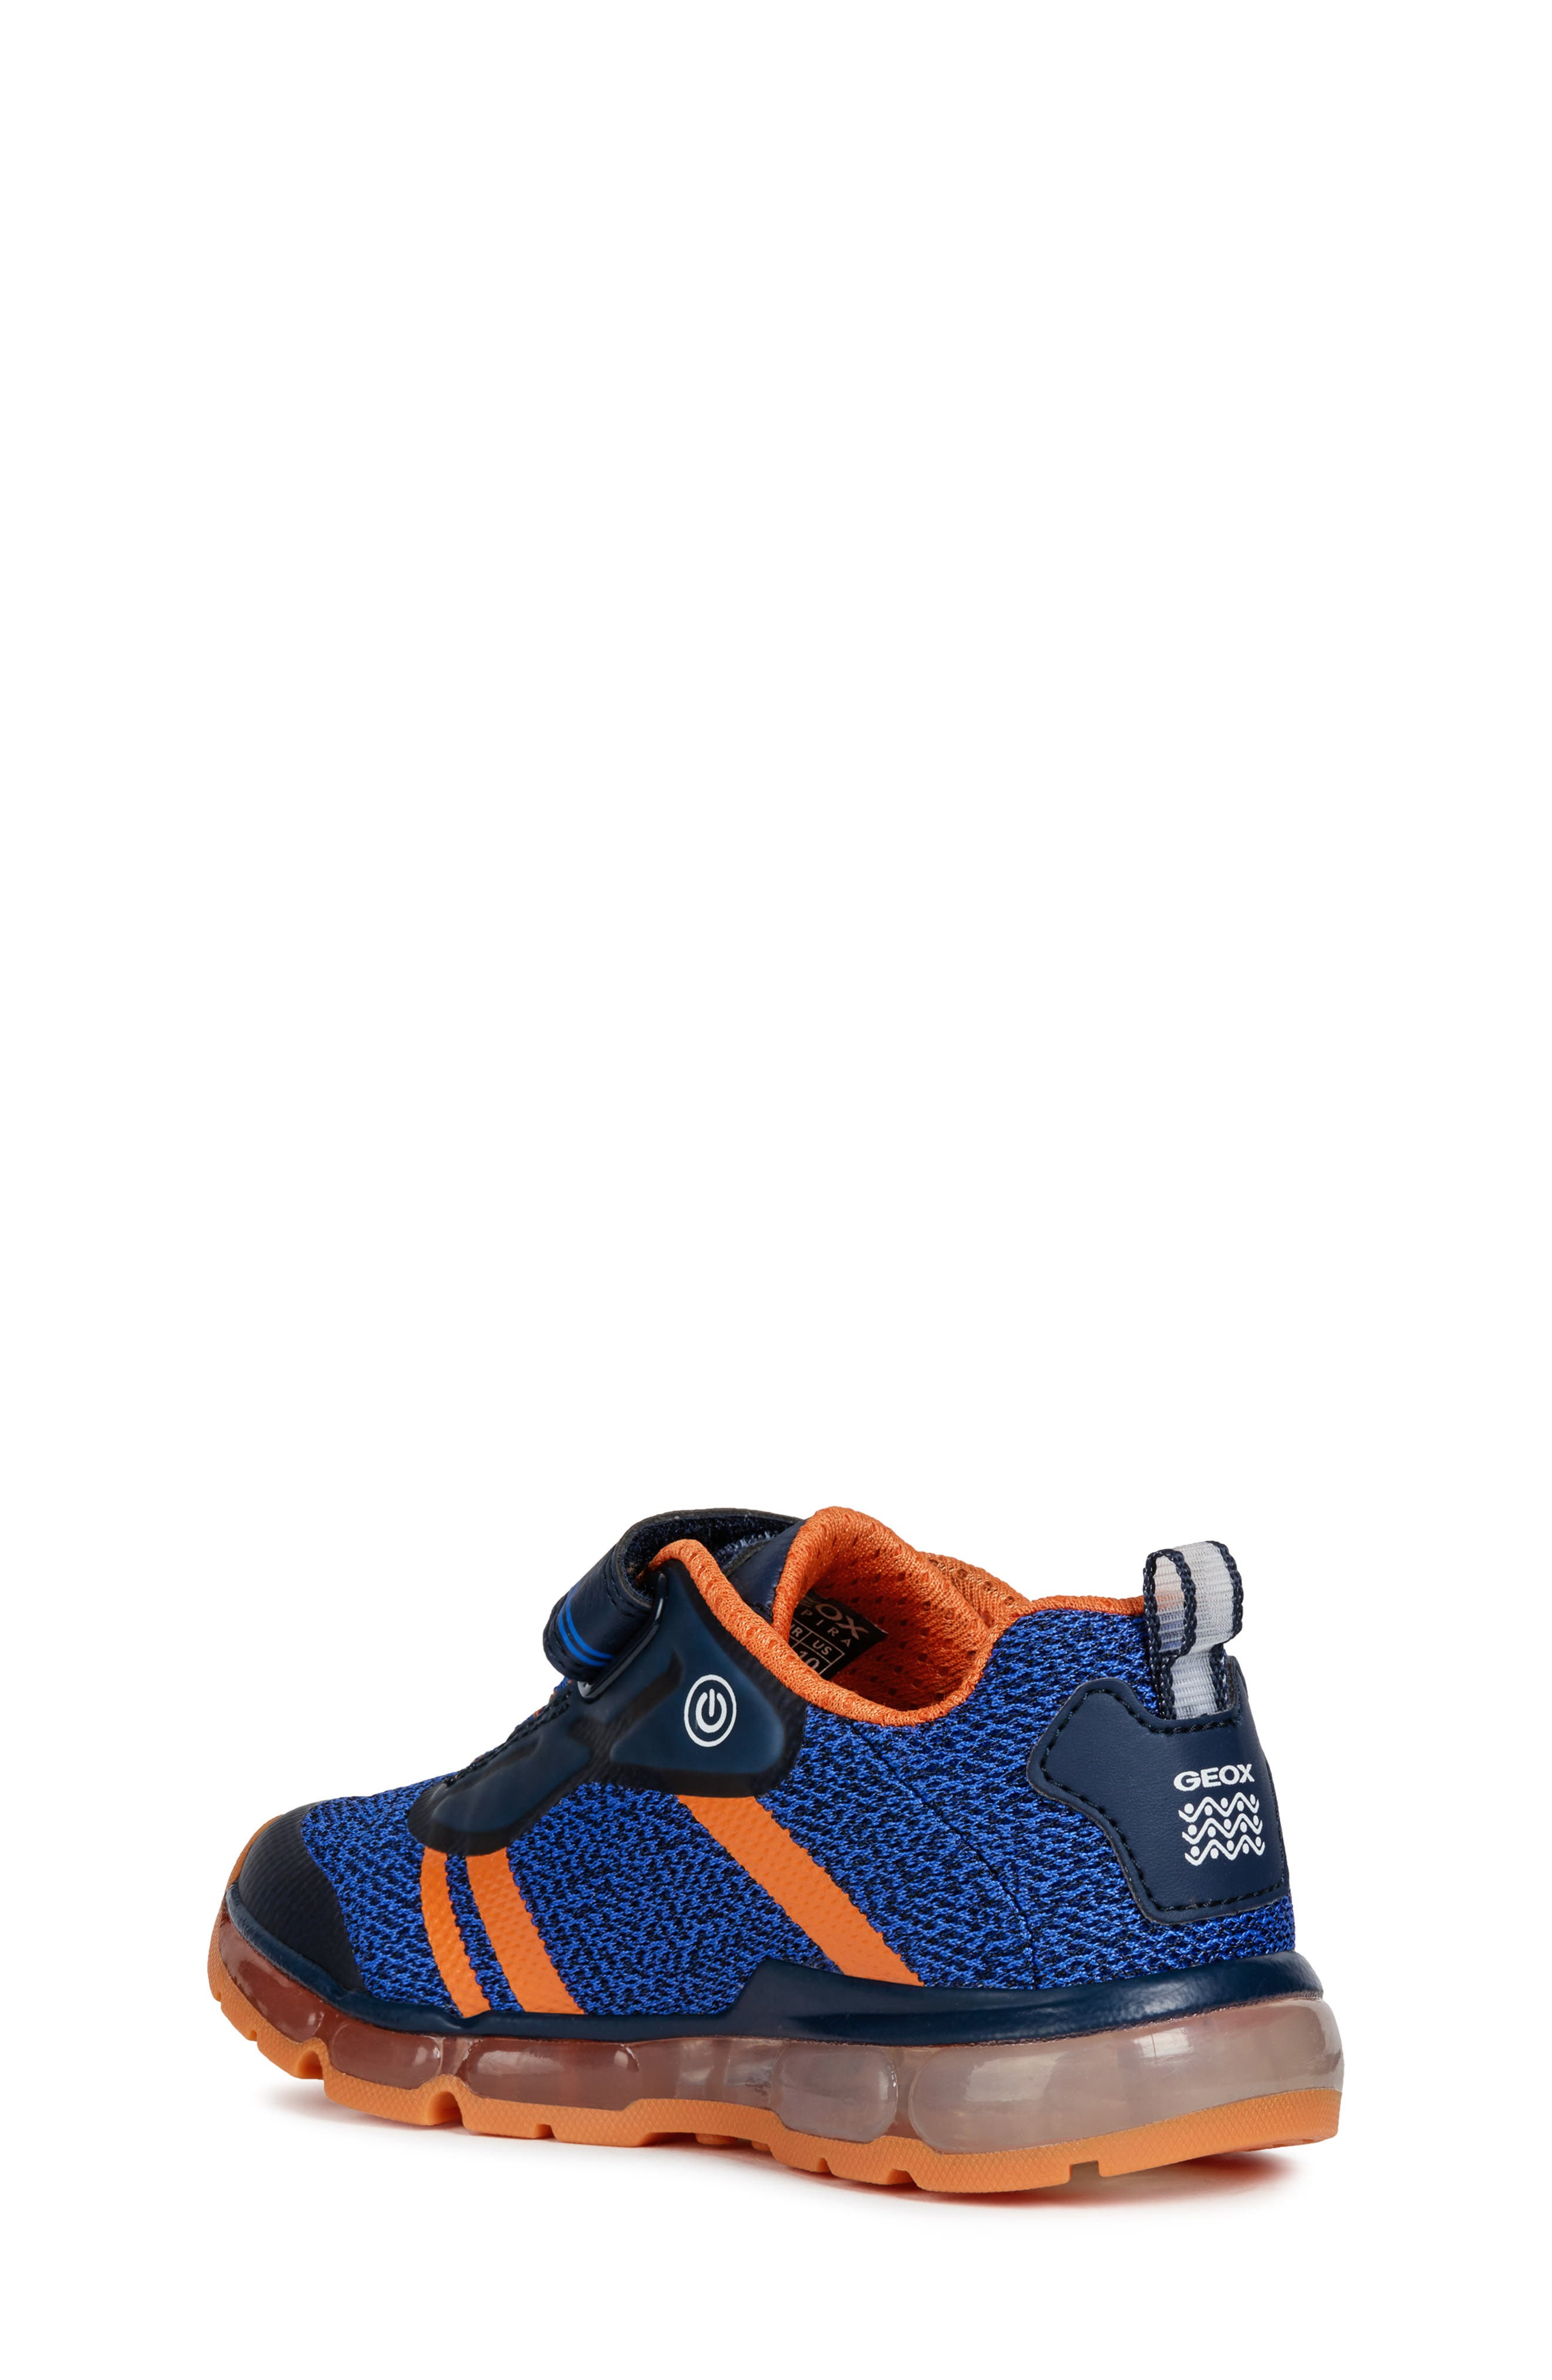 GEOX, Android 19 Light-Up Sneaker, Alternate thumbnail 2, color, NAVY/ ORANGE